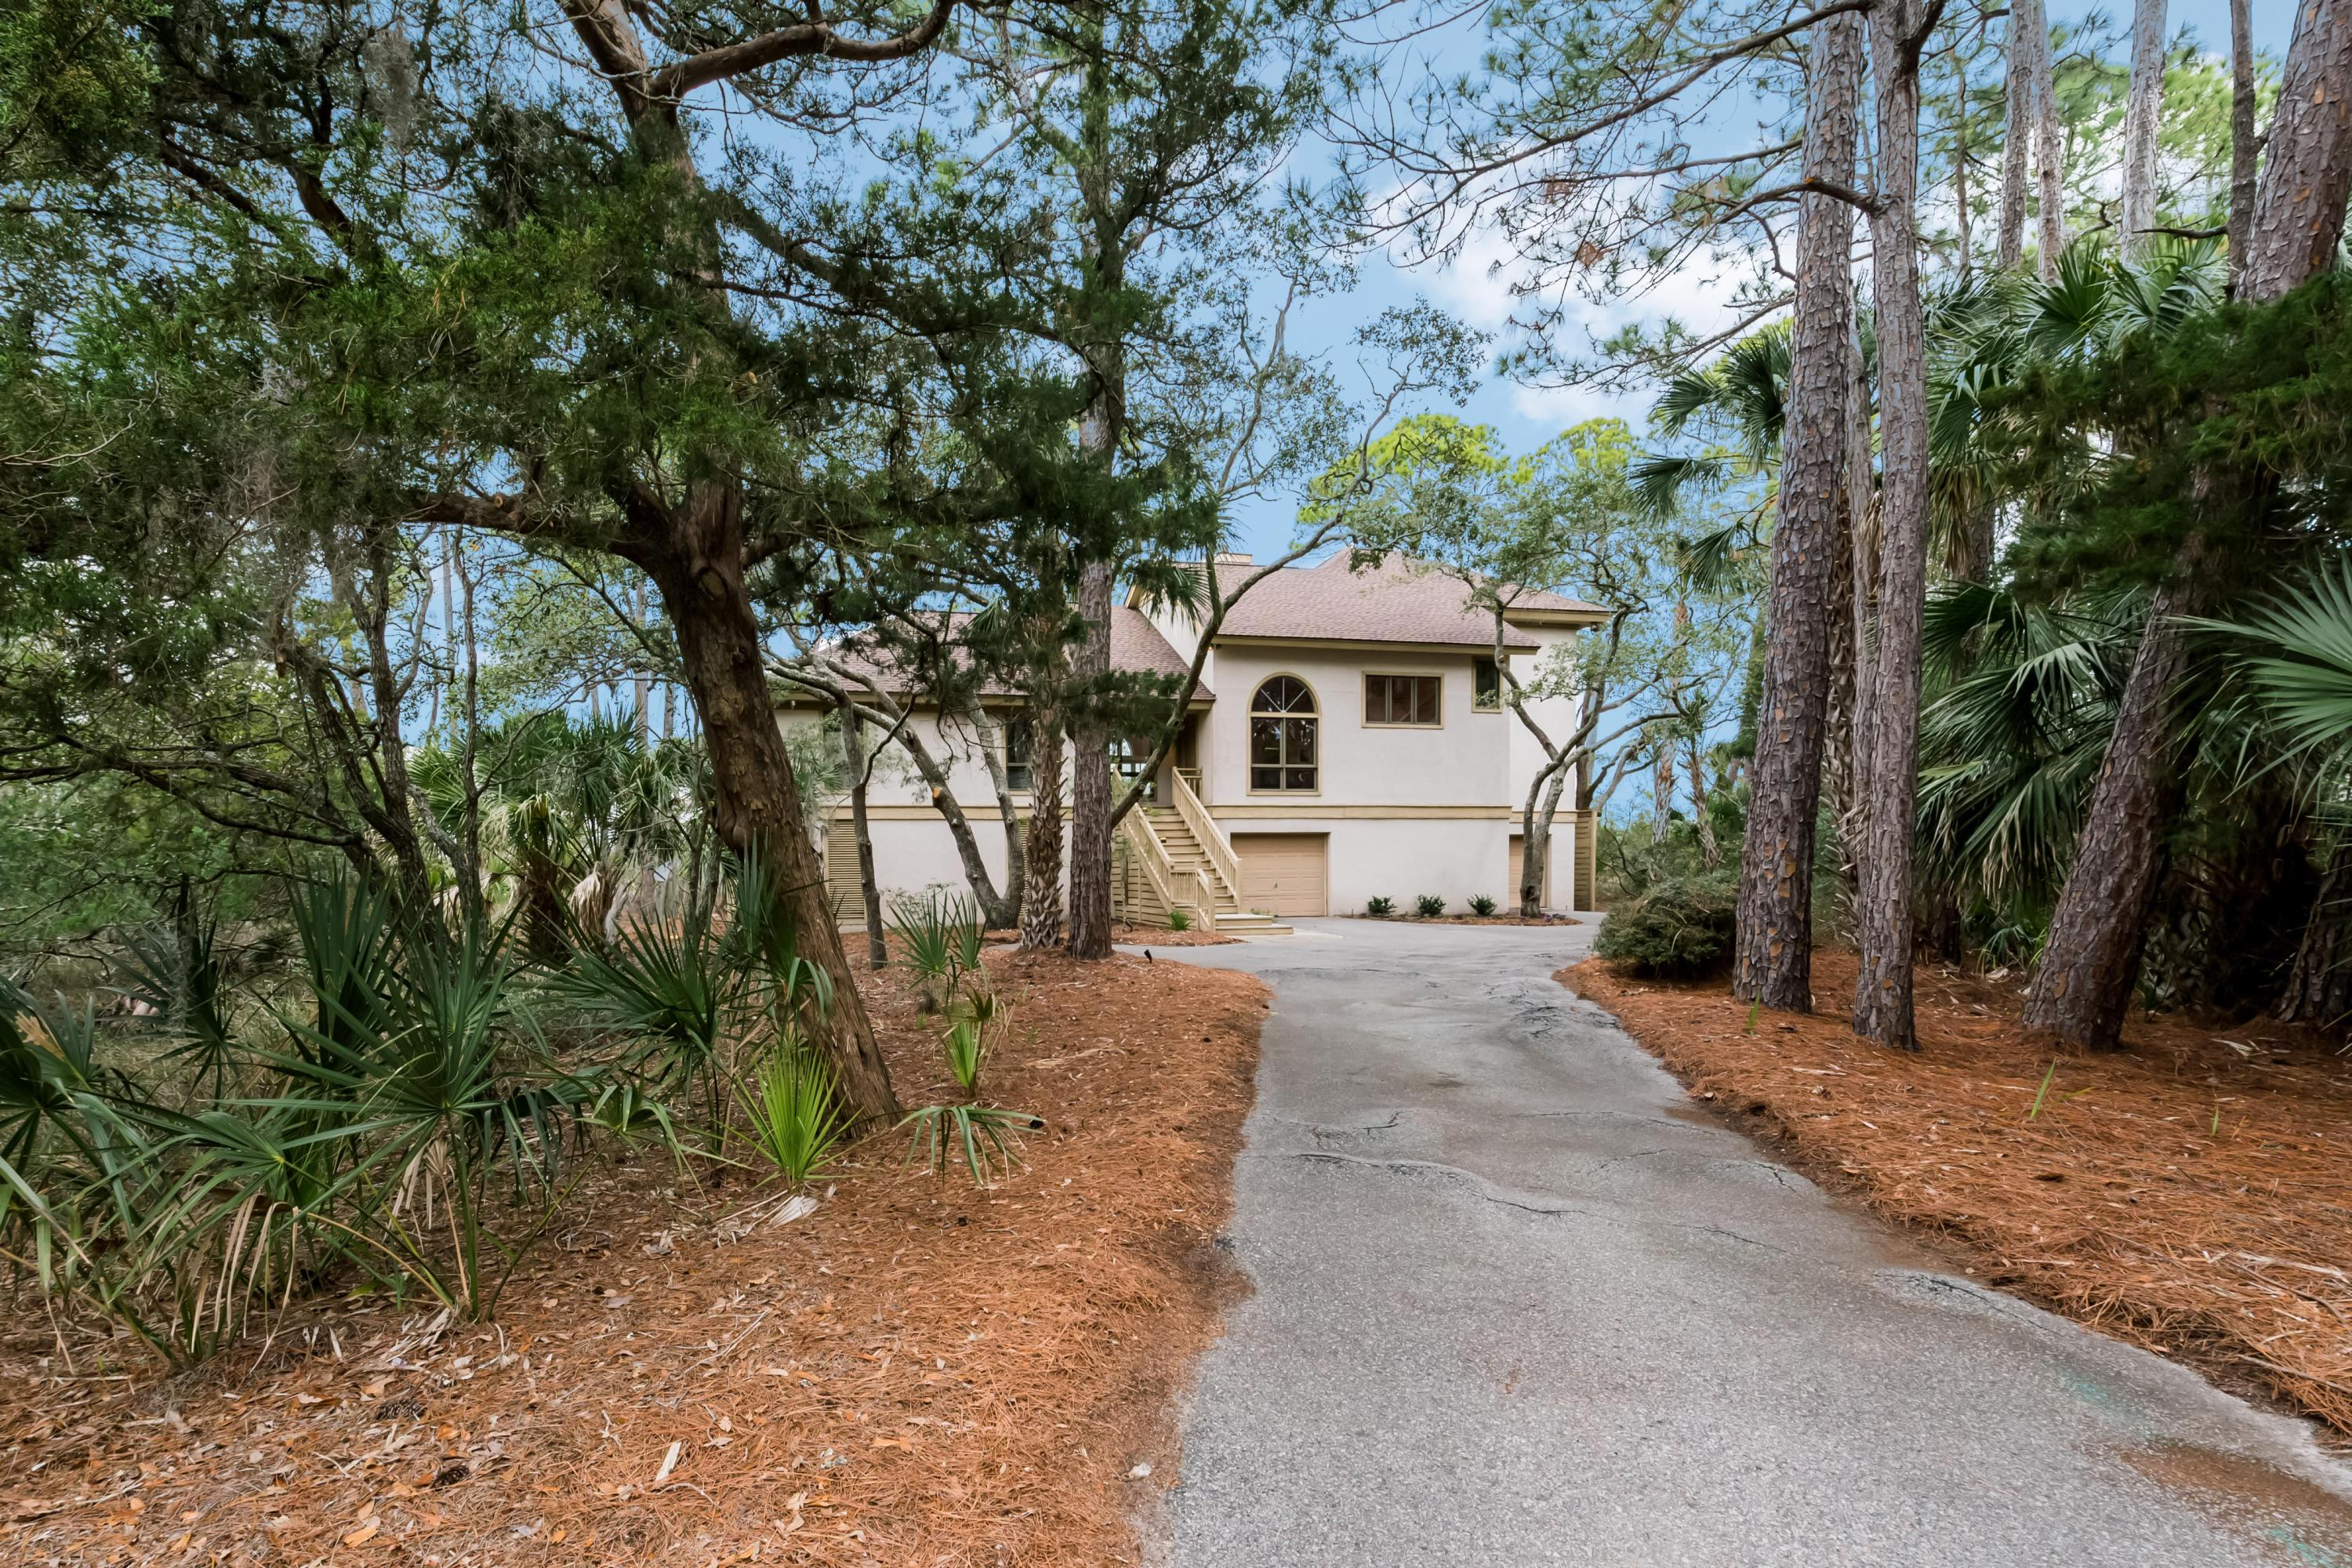 38 Marsh Edge Lane Kiawah Island, SC 29455